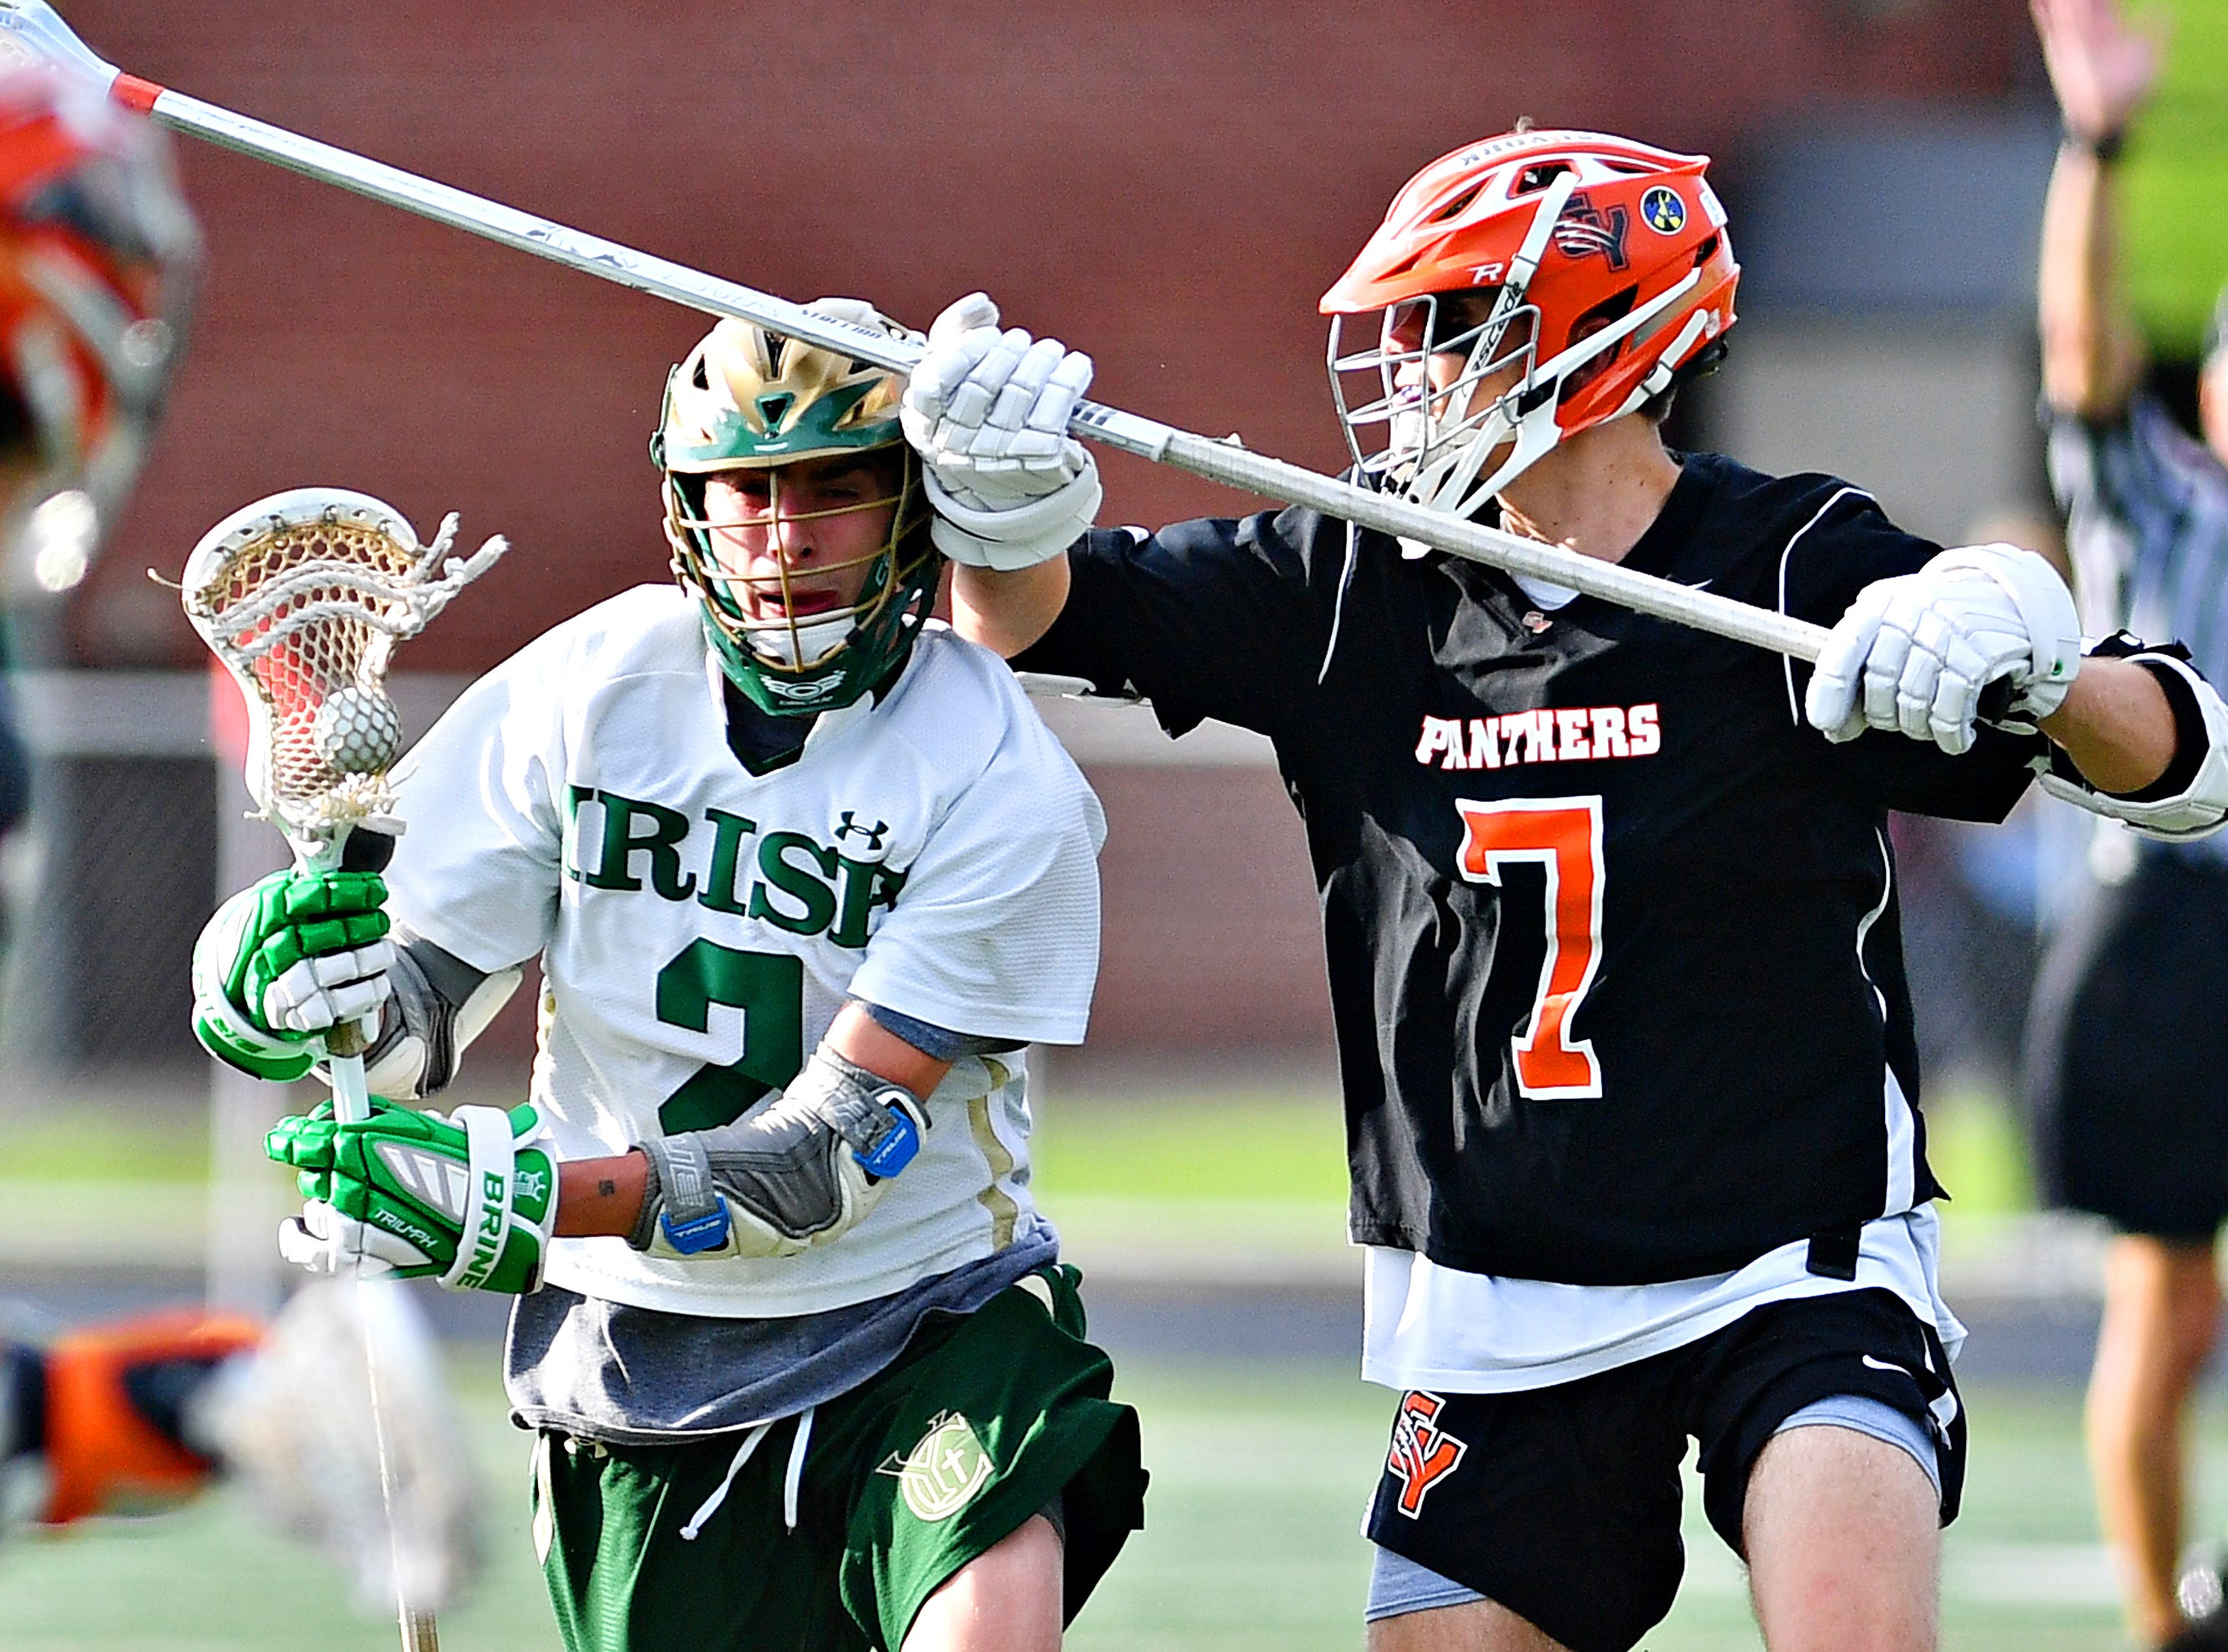 York Catholic's Massimo Antolick, left, controls the ball while Central York's Robert Stockbower defends during lacrosse championship action at Eastern York Senior High School in Wrightsville, Friday, May 10, 2019. Central York would win the title game 13-5. Dawn J. Sagert photo